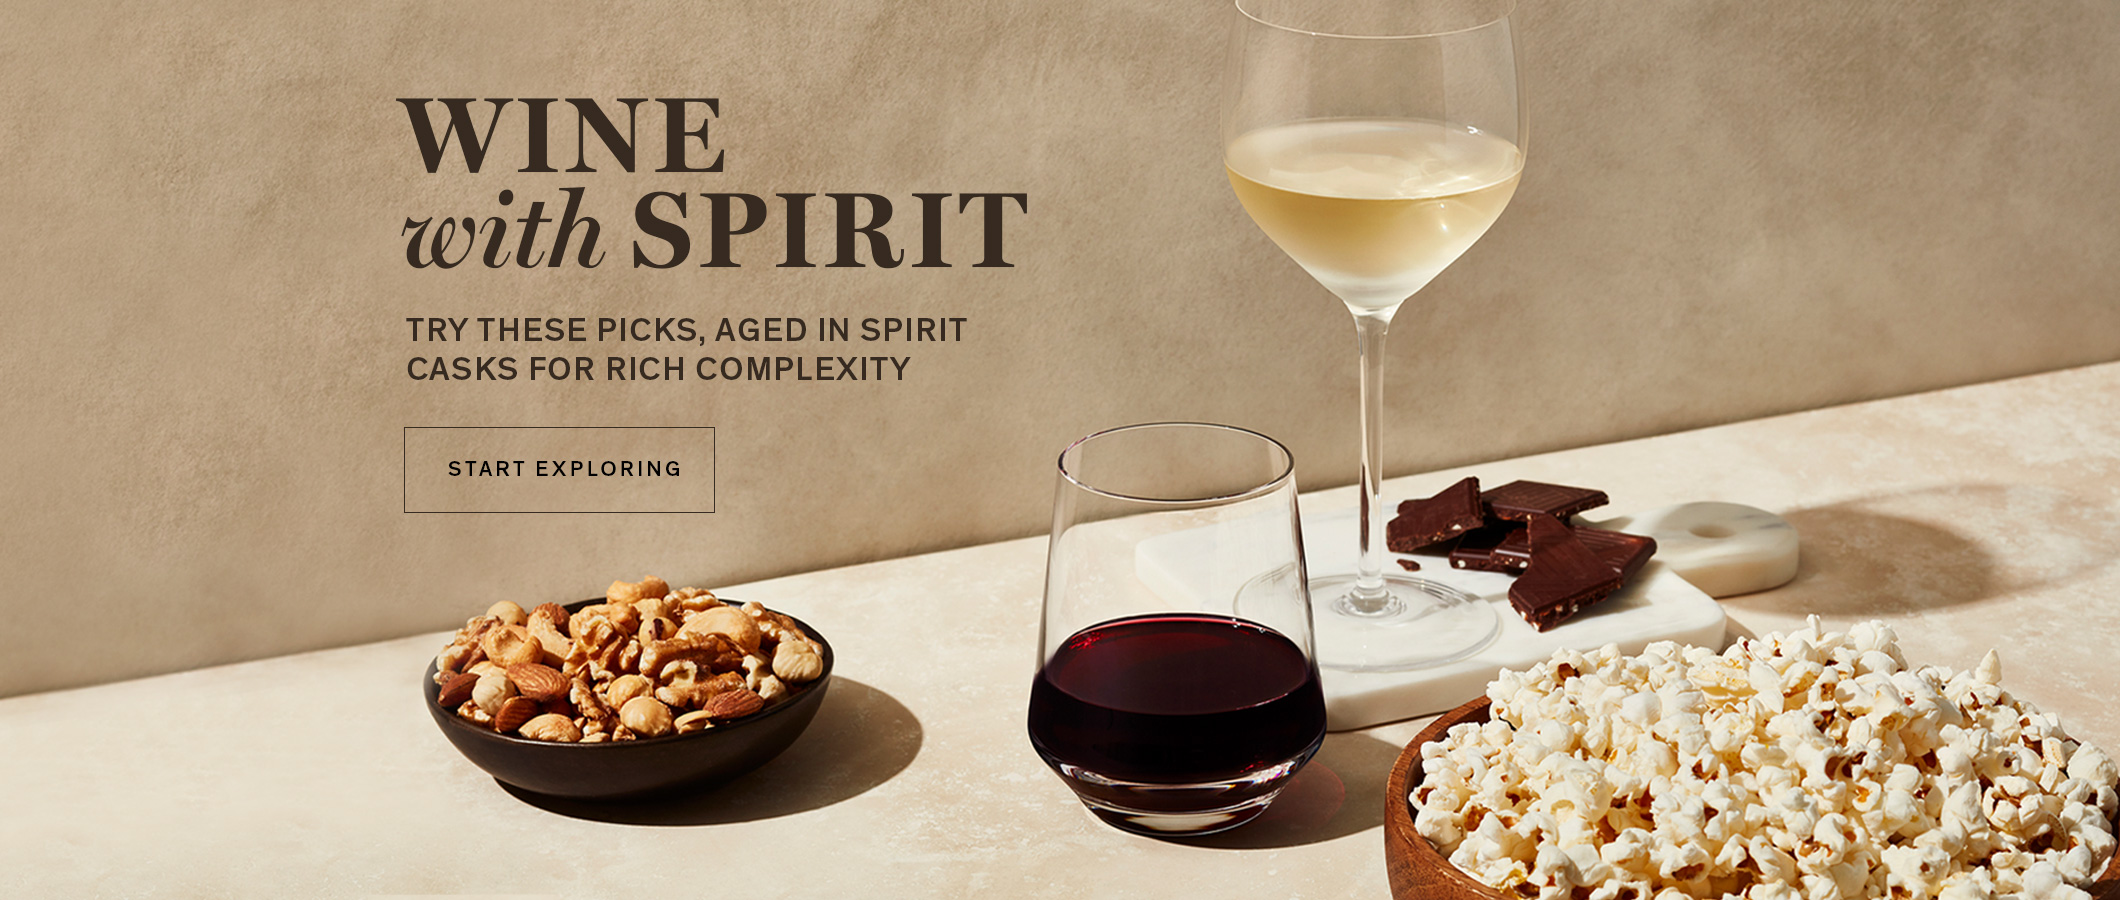 Wine with Spirit Try - These Picks, Aged in Spirit Casks for Rich Complexity. START EXPLORING